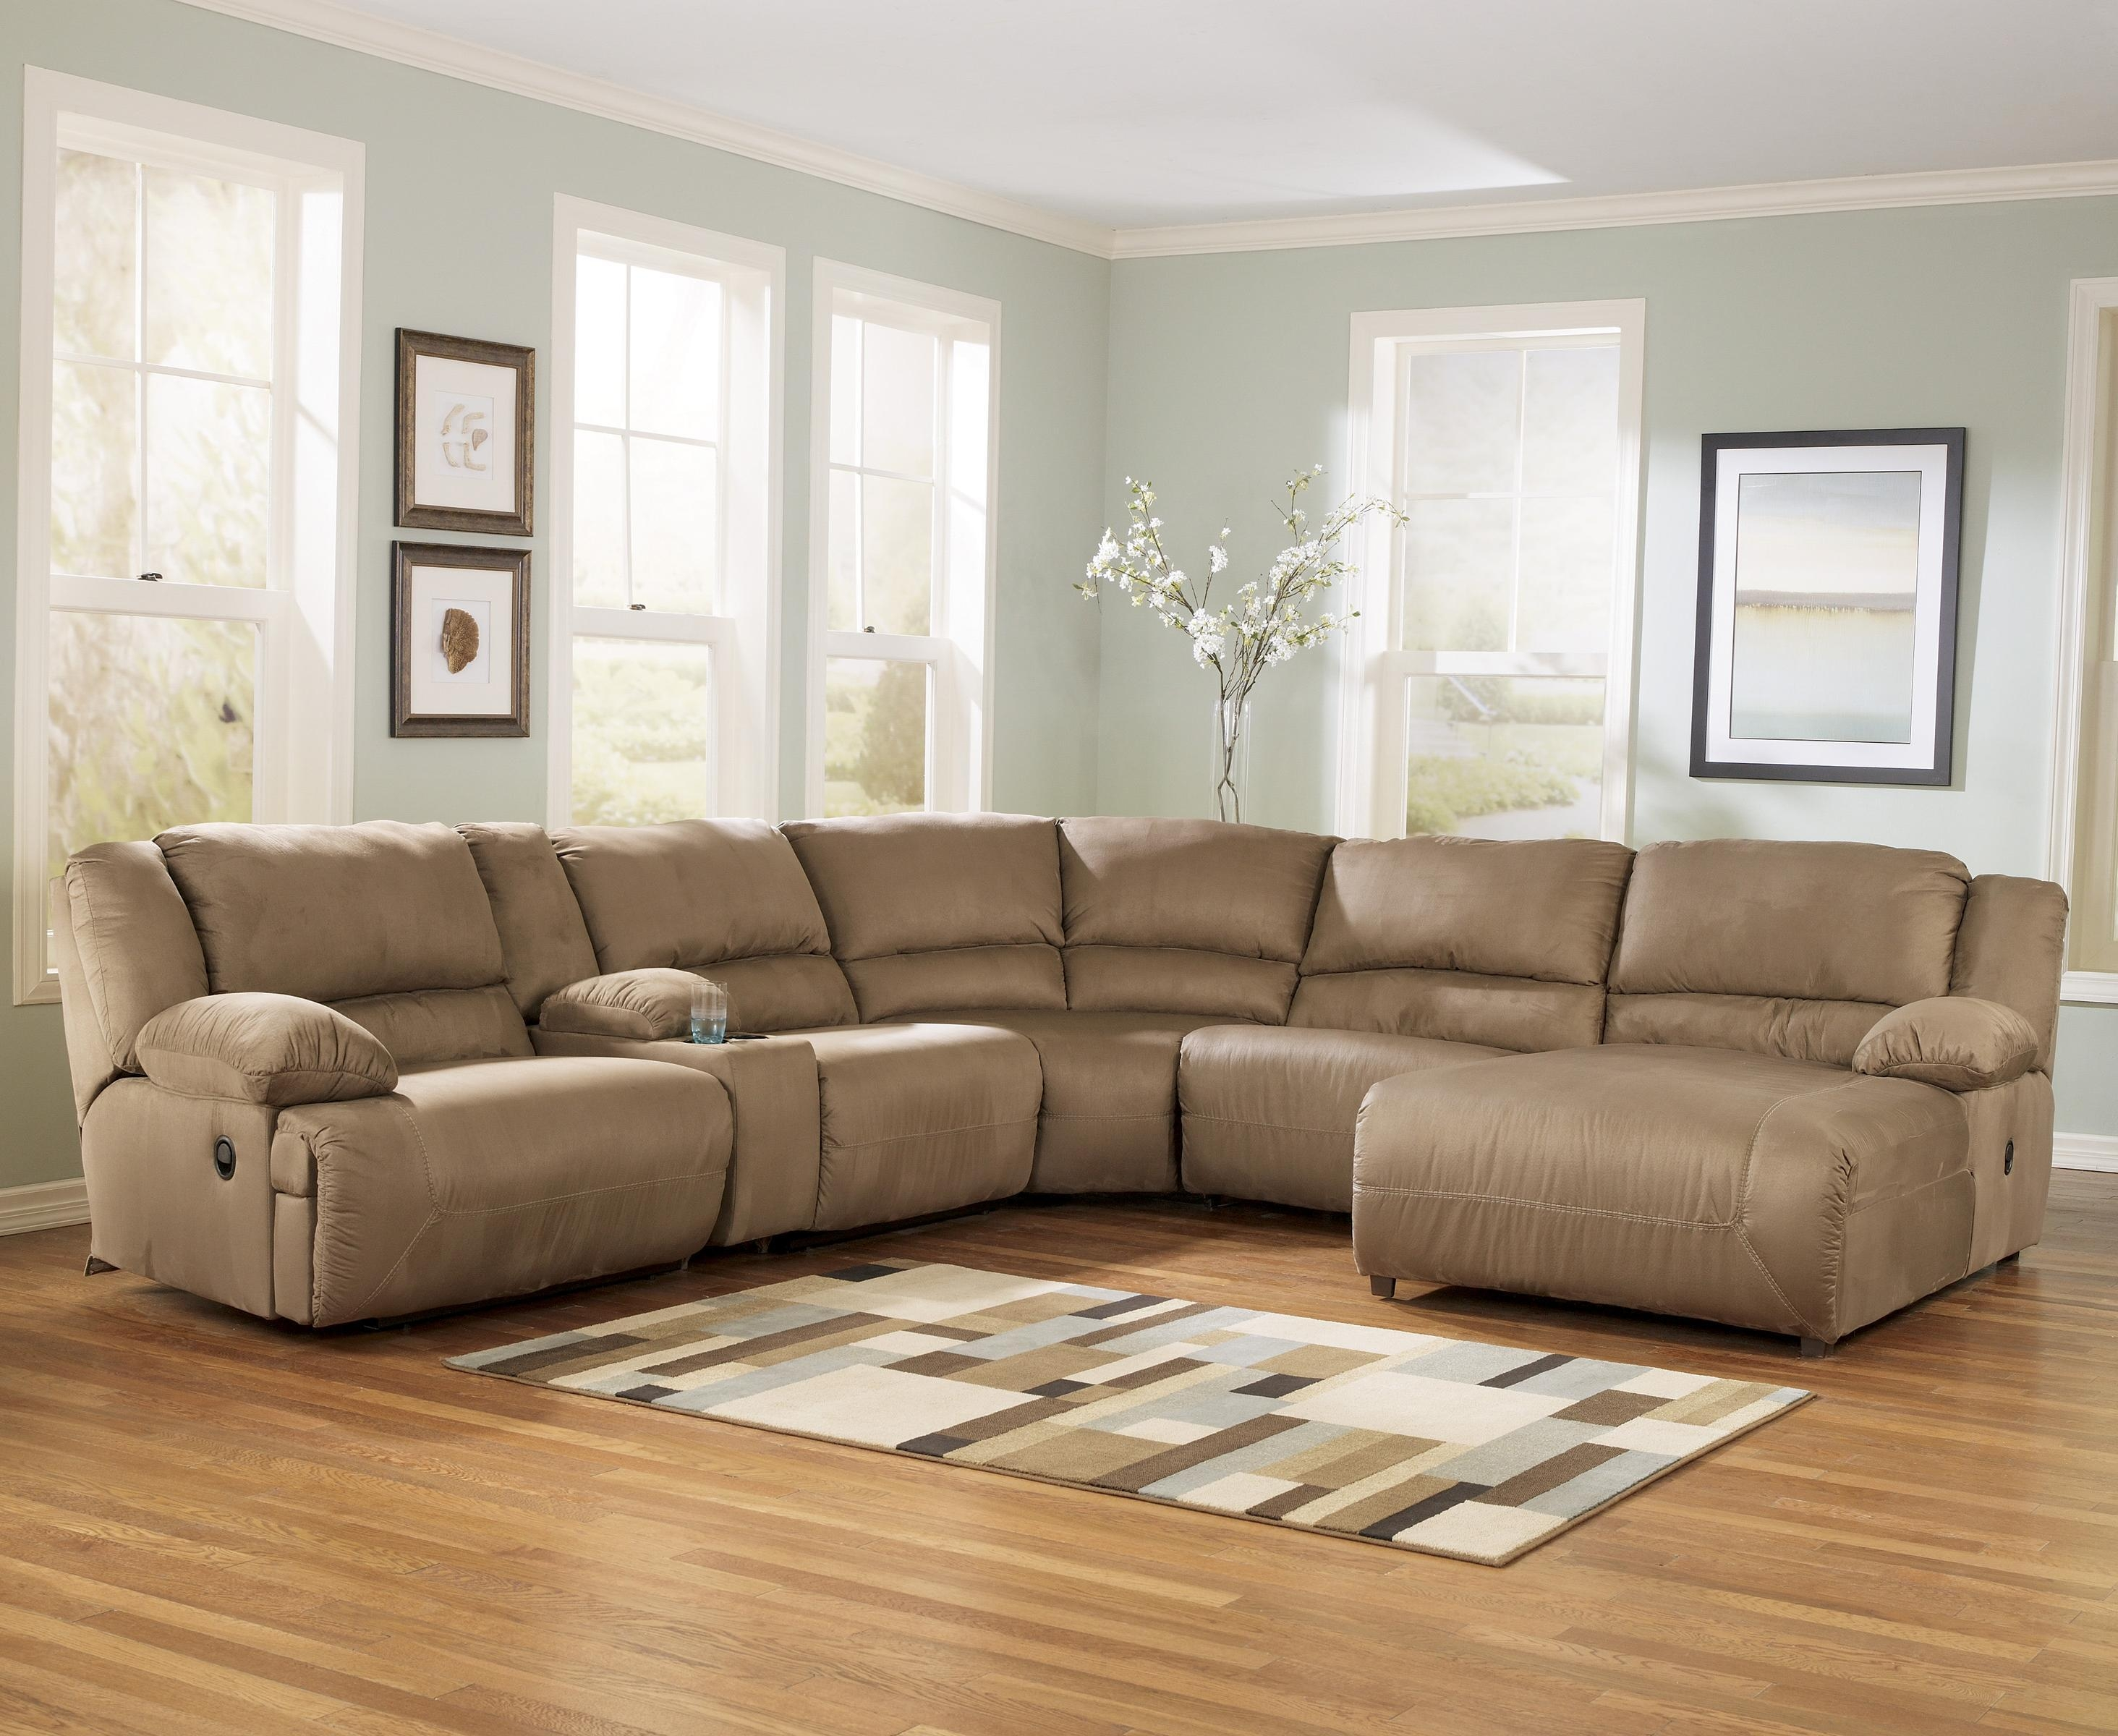 Featured Image of 6 Piece Sectional Sofas Couches